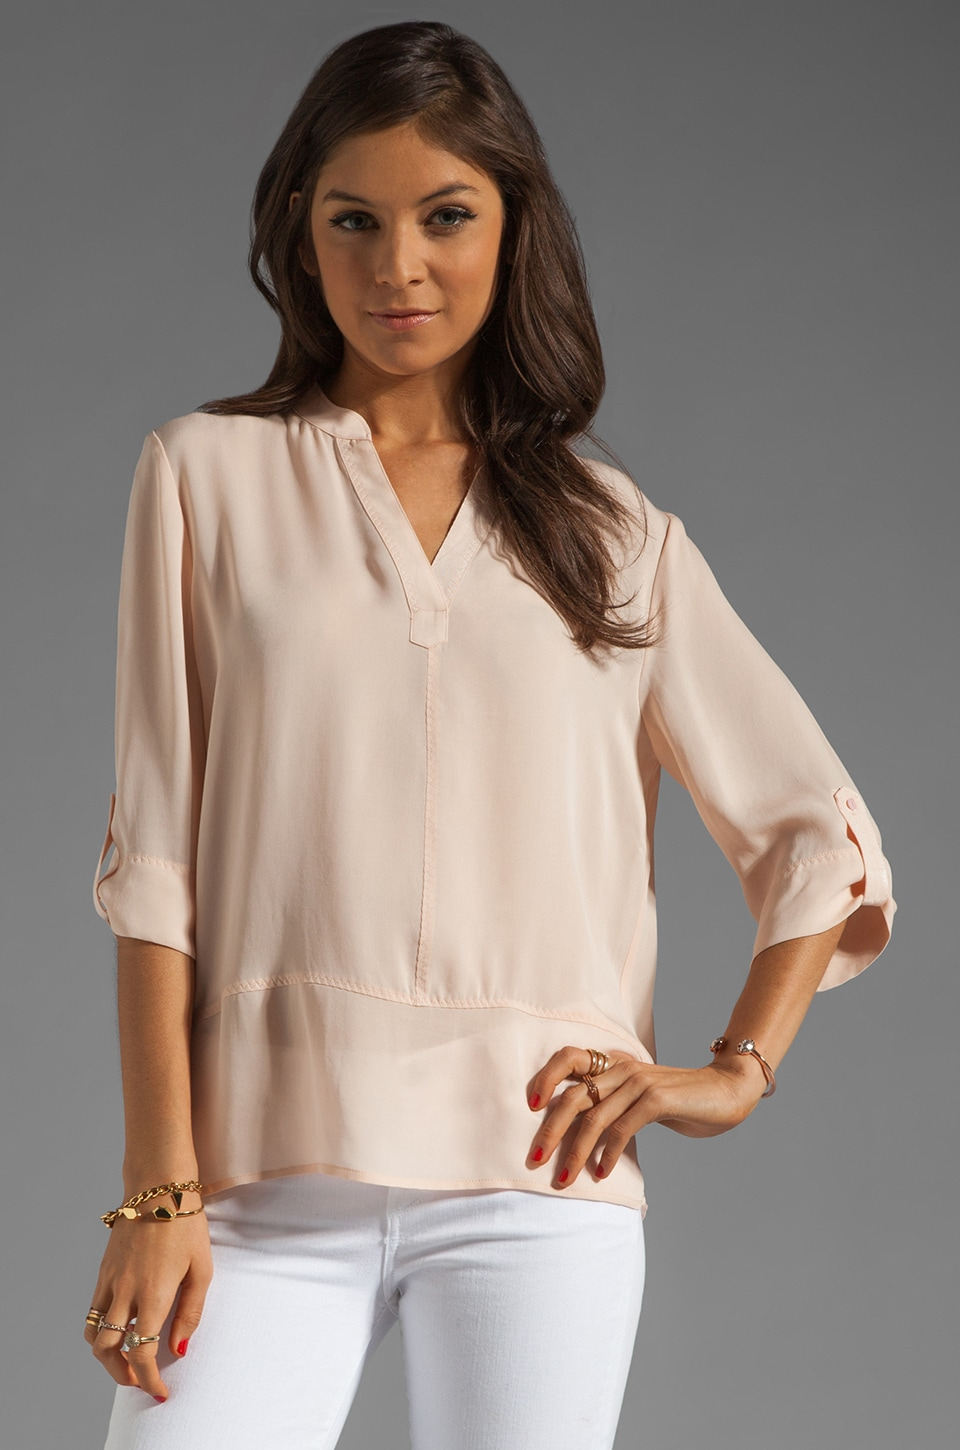 Michael Stars Wovens Cote D'Azur Elbow Sleeve Notched Tunic in Sugar Cane